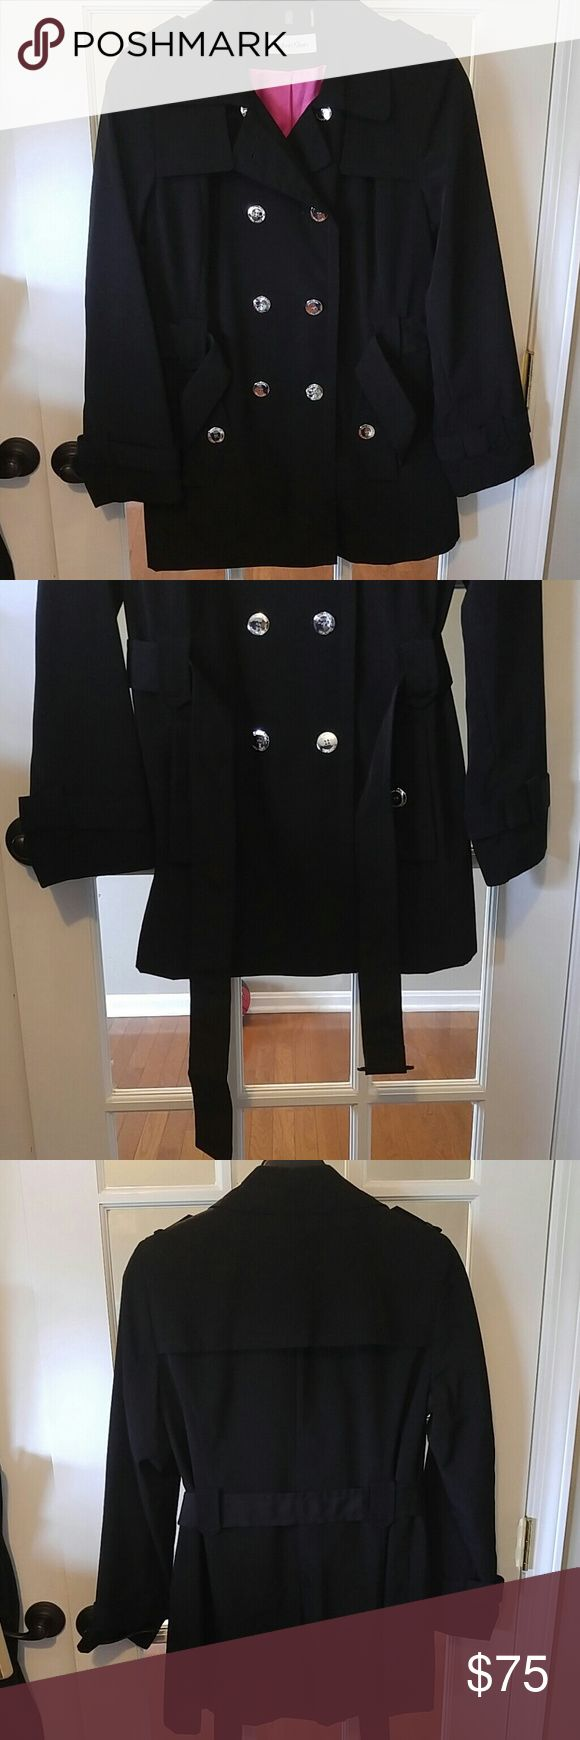 Calvin Klein double breasted trench coat Hot Pink lining Belted Like new condition Calvin Klein Jackets & Coats